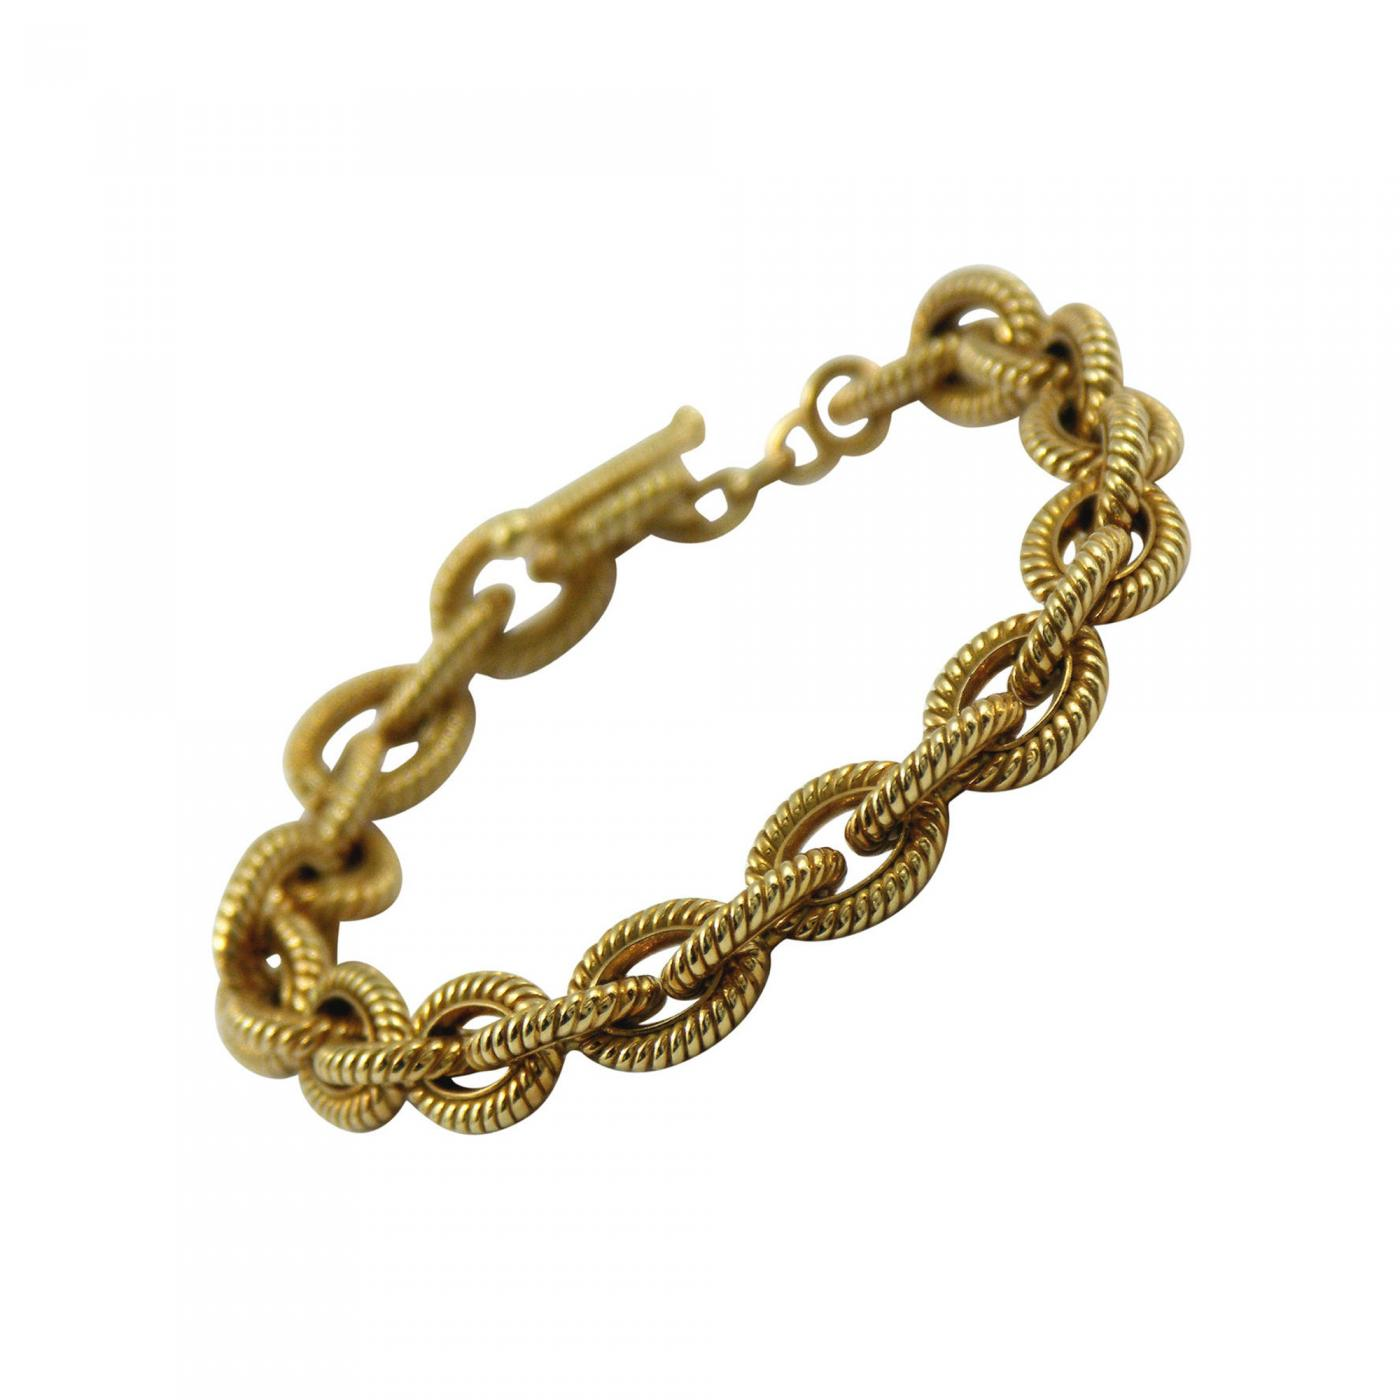 Tiffany and Co  - Tiffany and Co  Gold Twisted Rope Link Bracelet